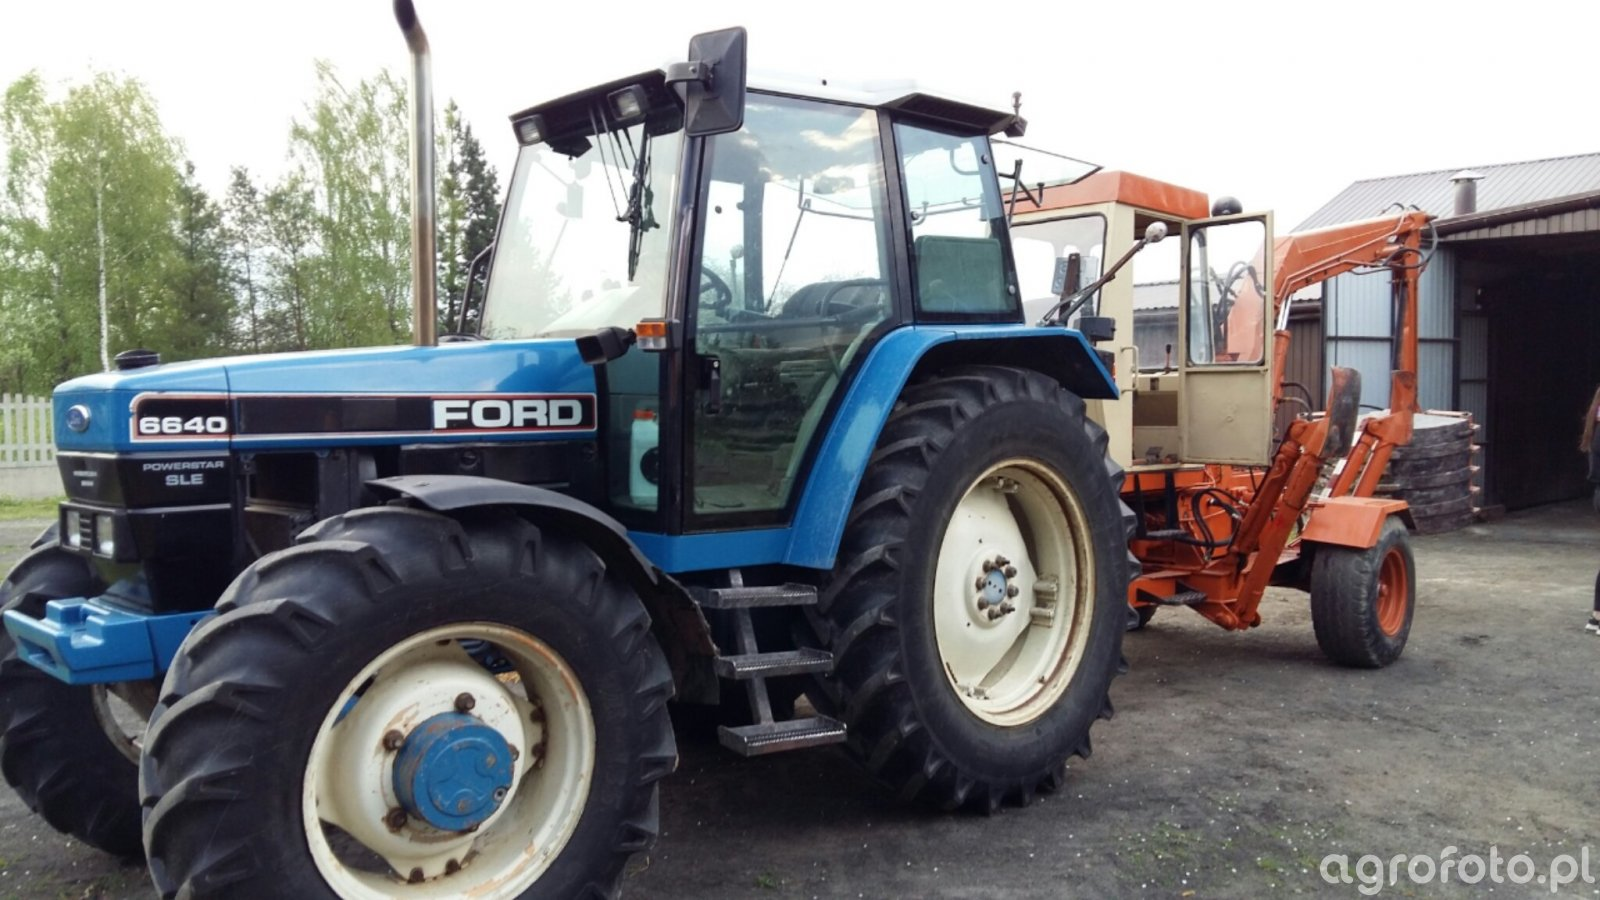 Ford 6640 & UNHZ 750